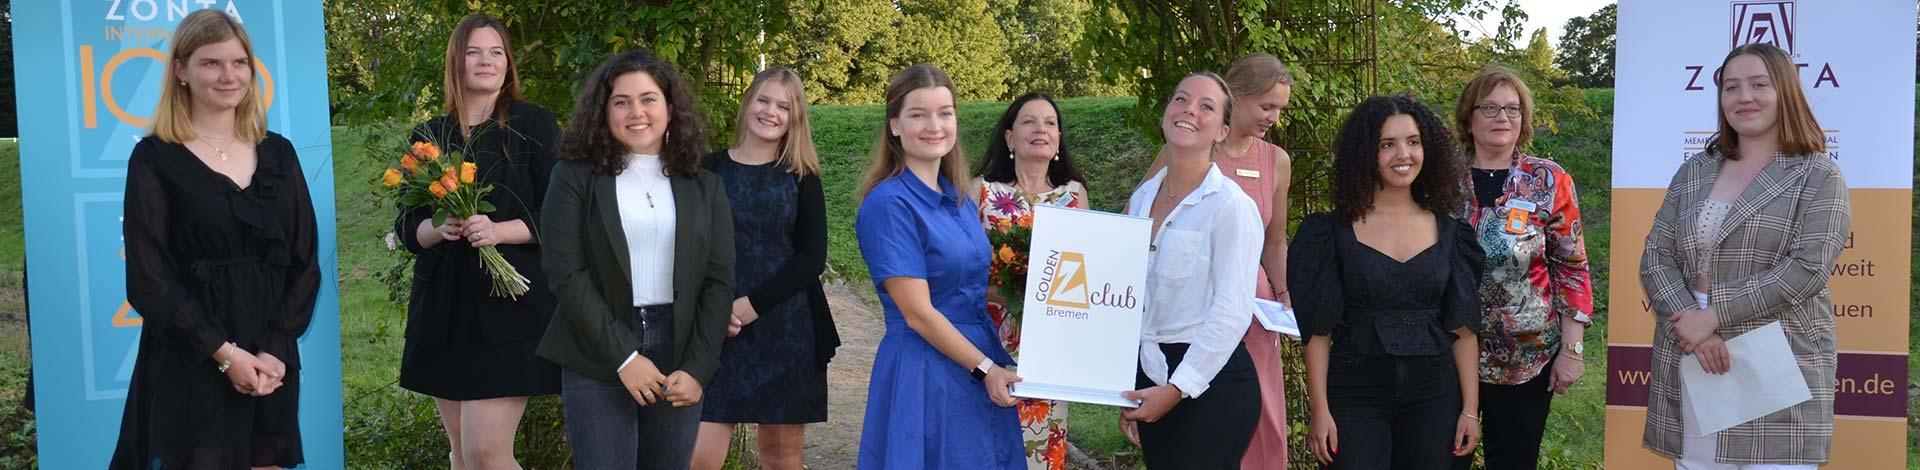 Zonta Golden-Z-Club Bremen